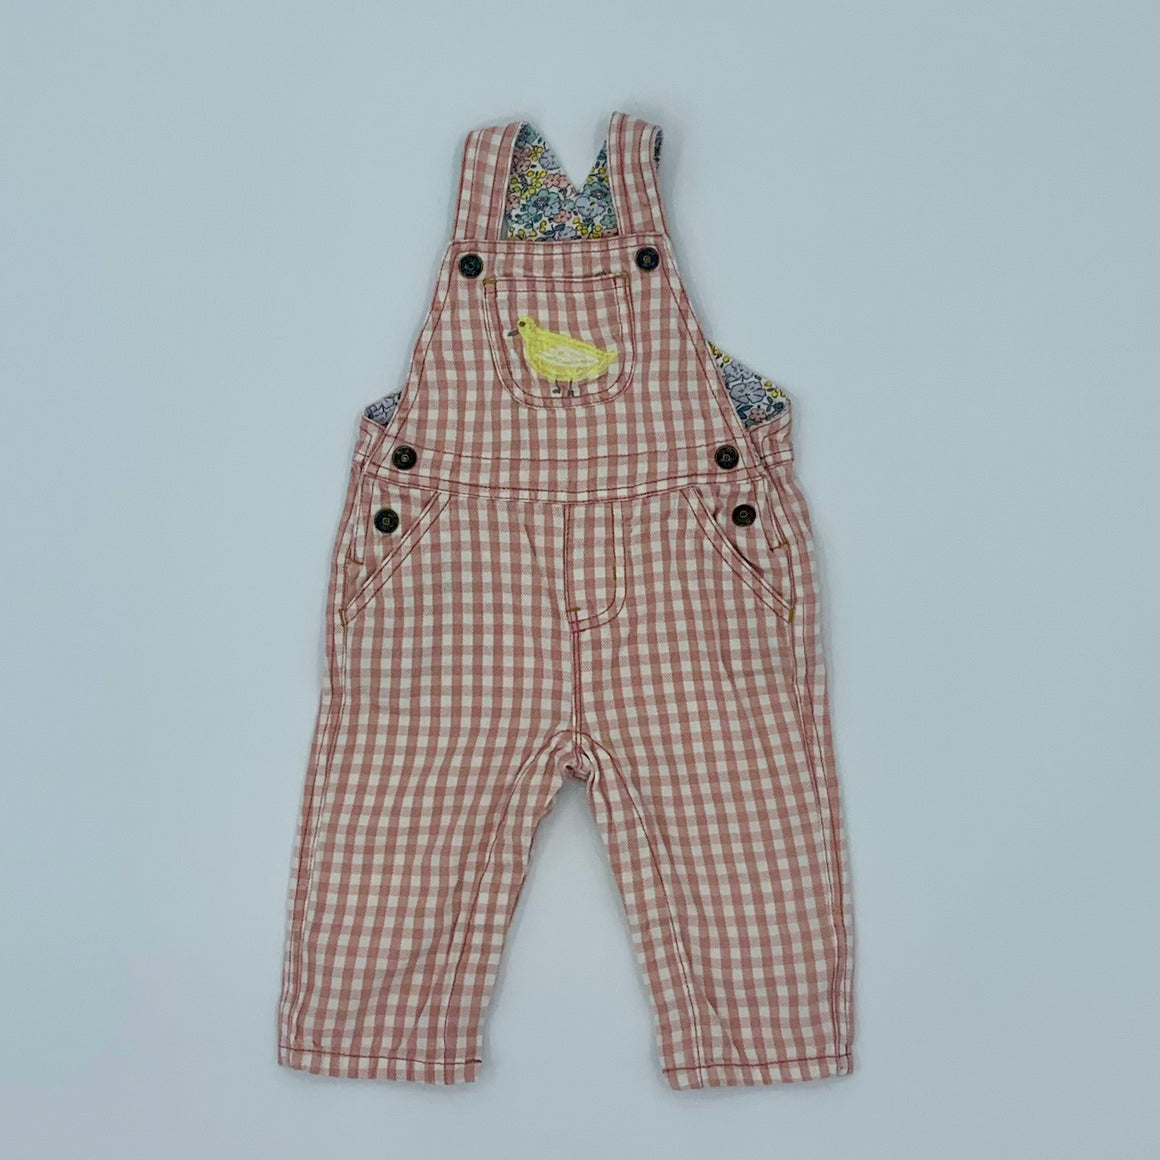 Gently Worn Boden pink check dungarees size 6-12 months